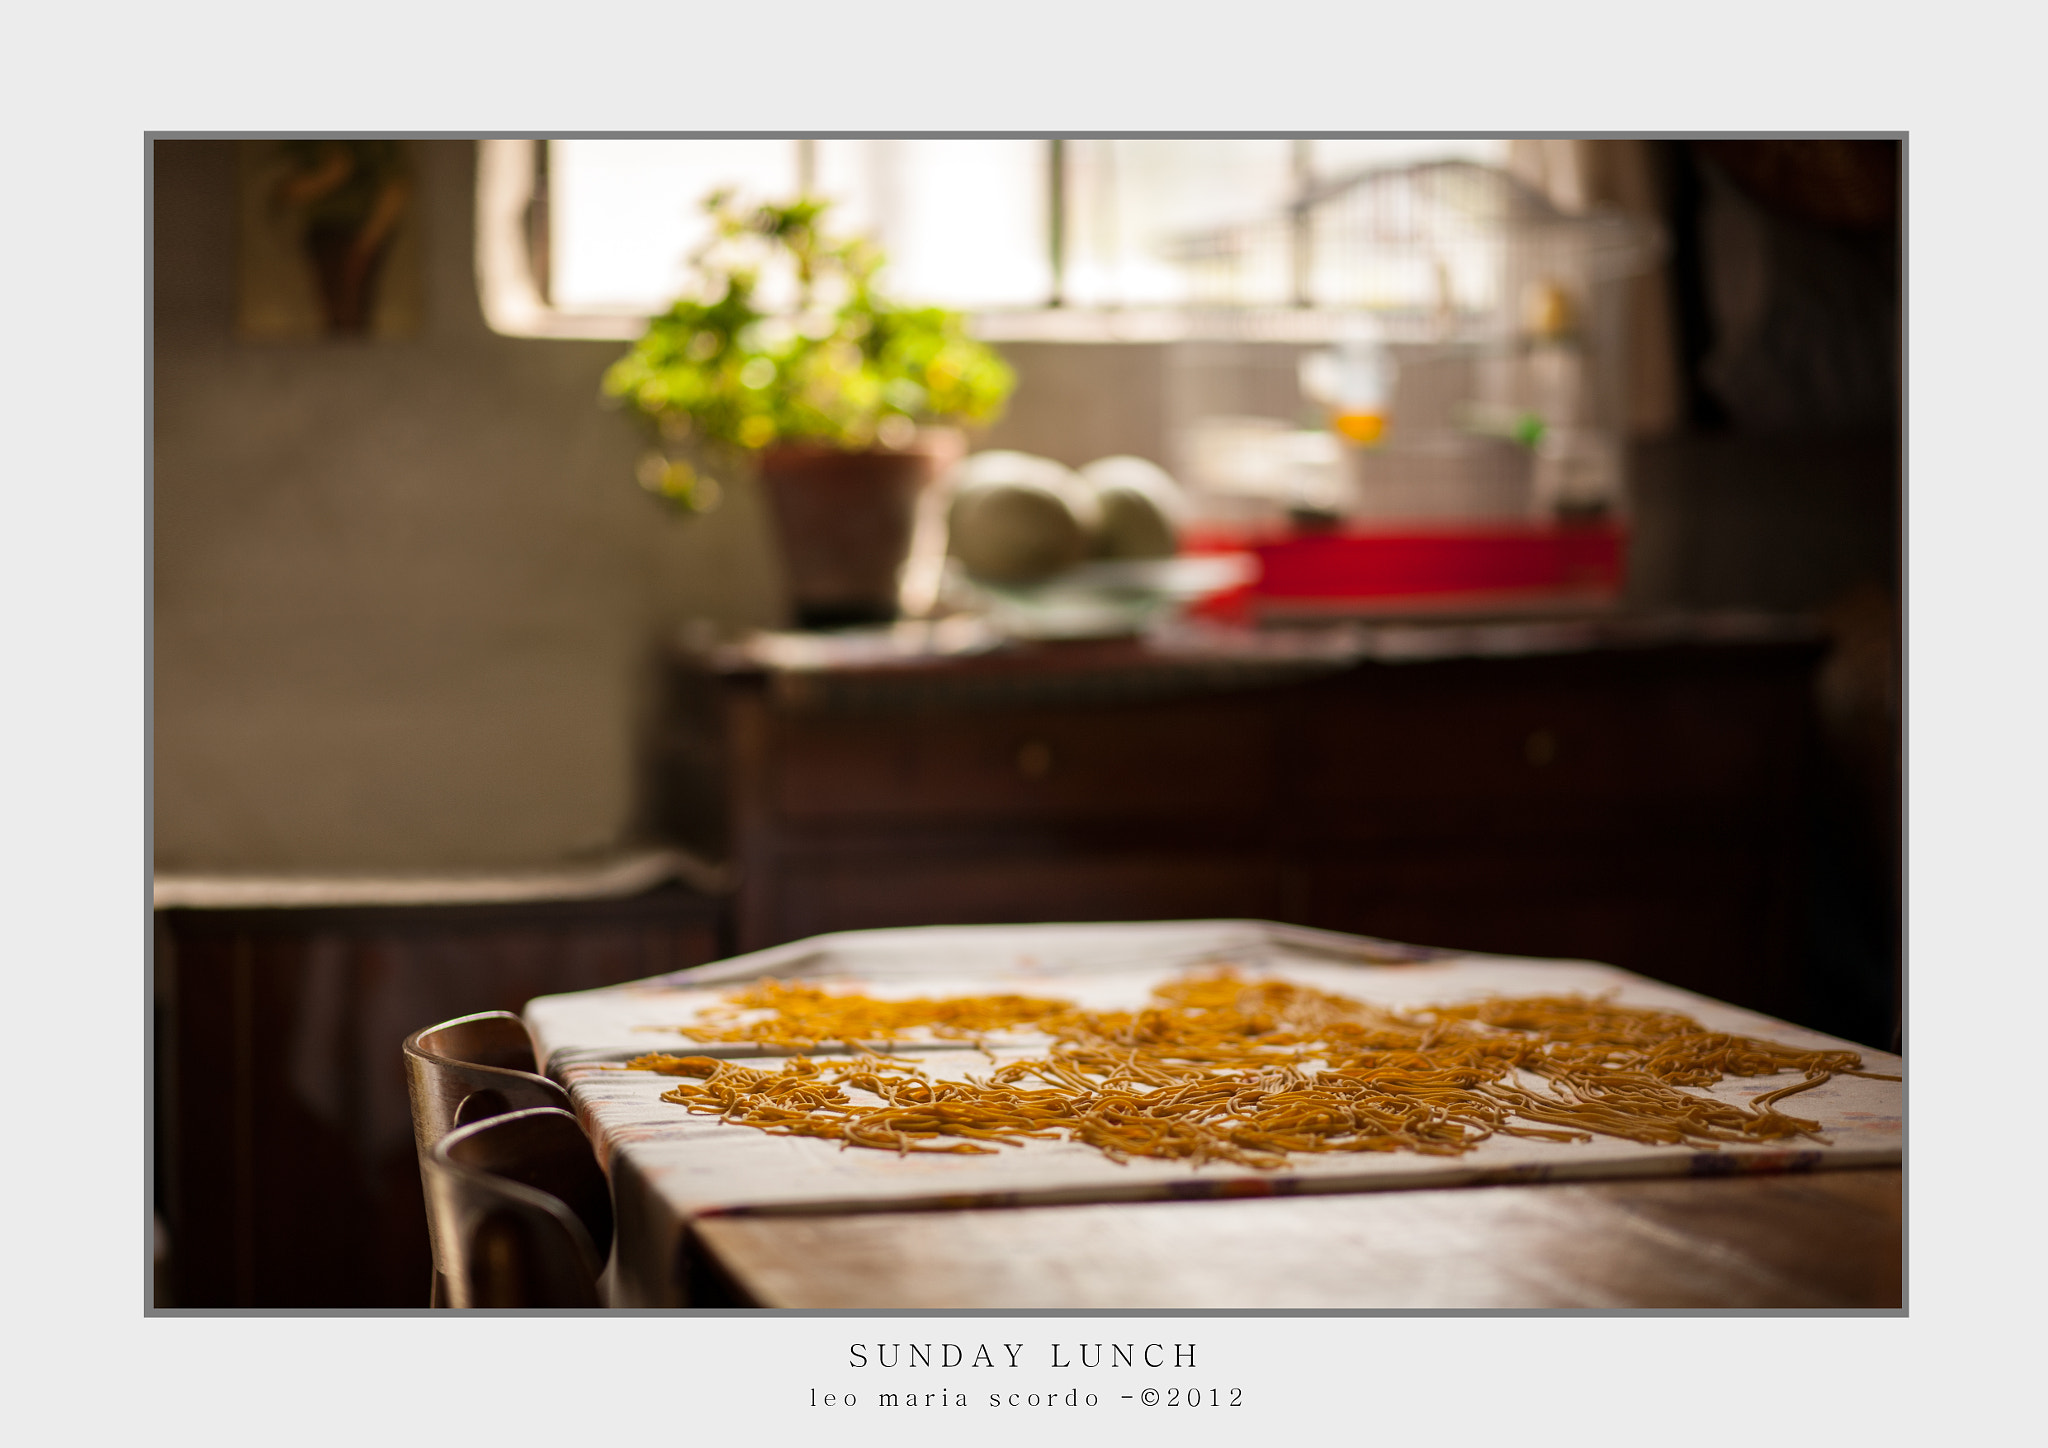 Photograph SUNDAY LUNCH by Leo Maria Scordo on 500px